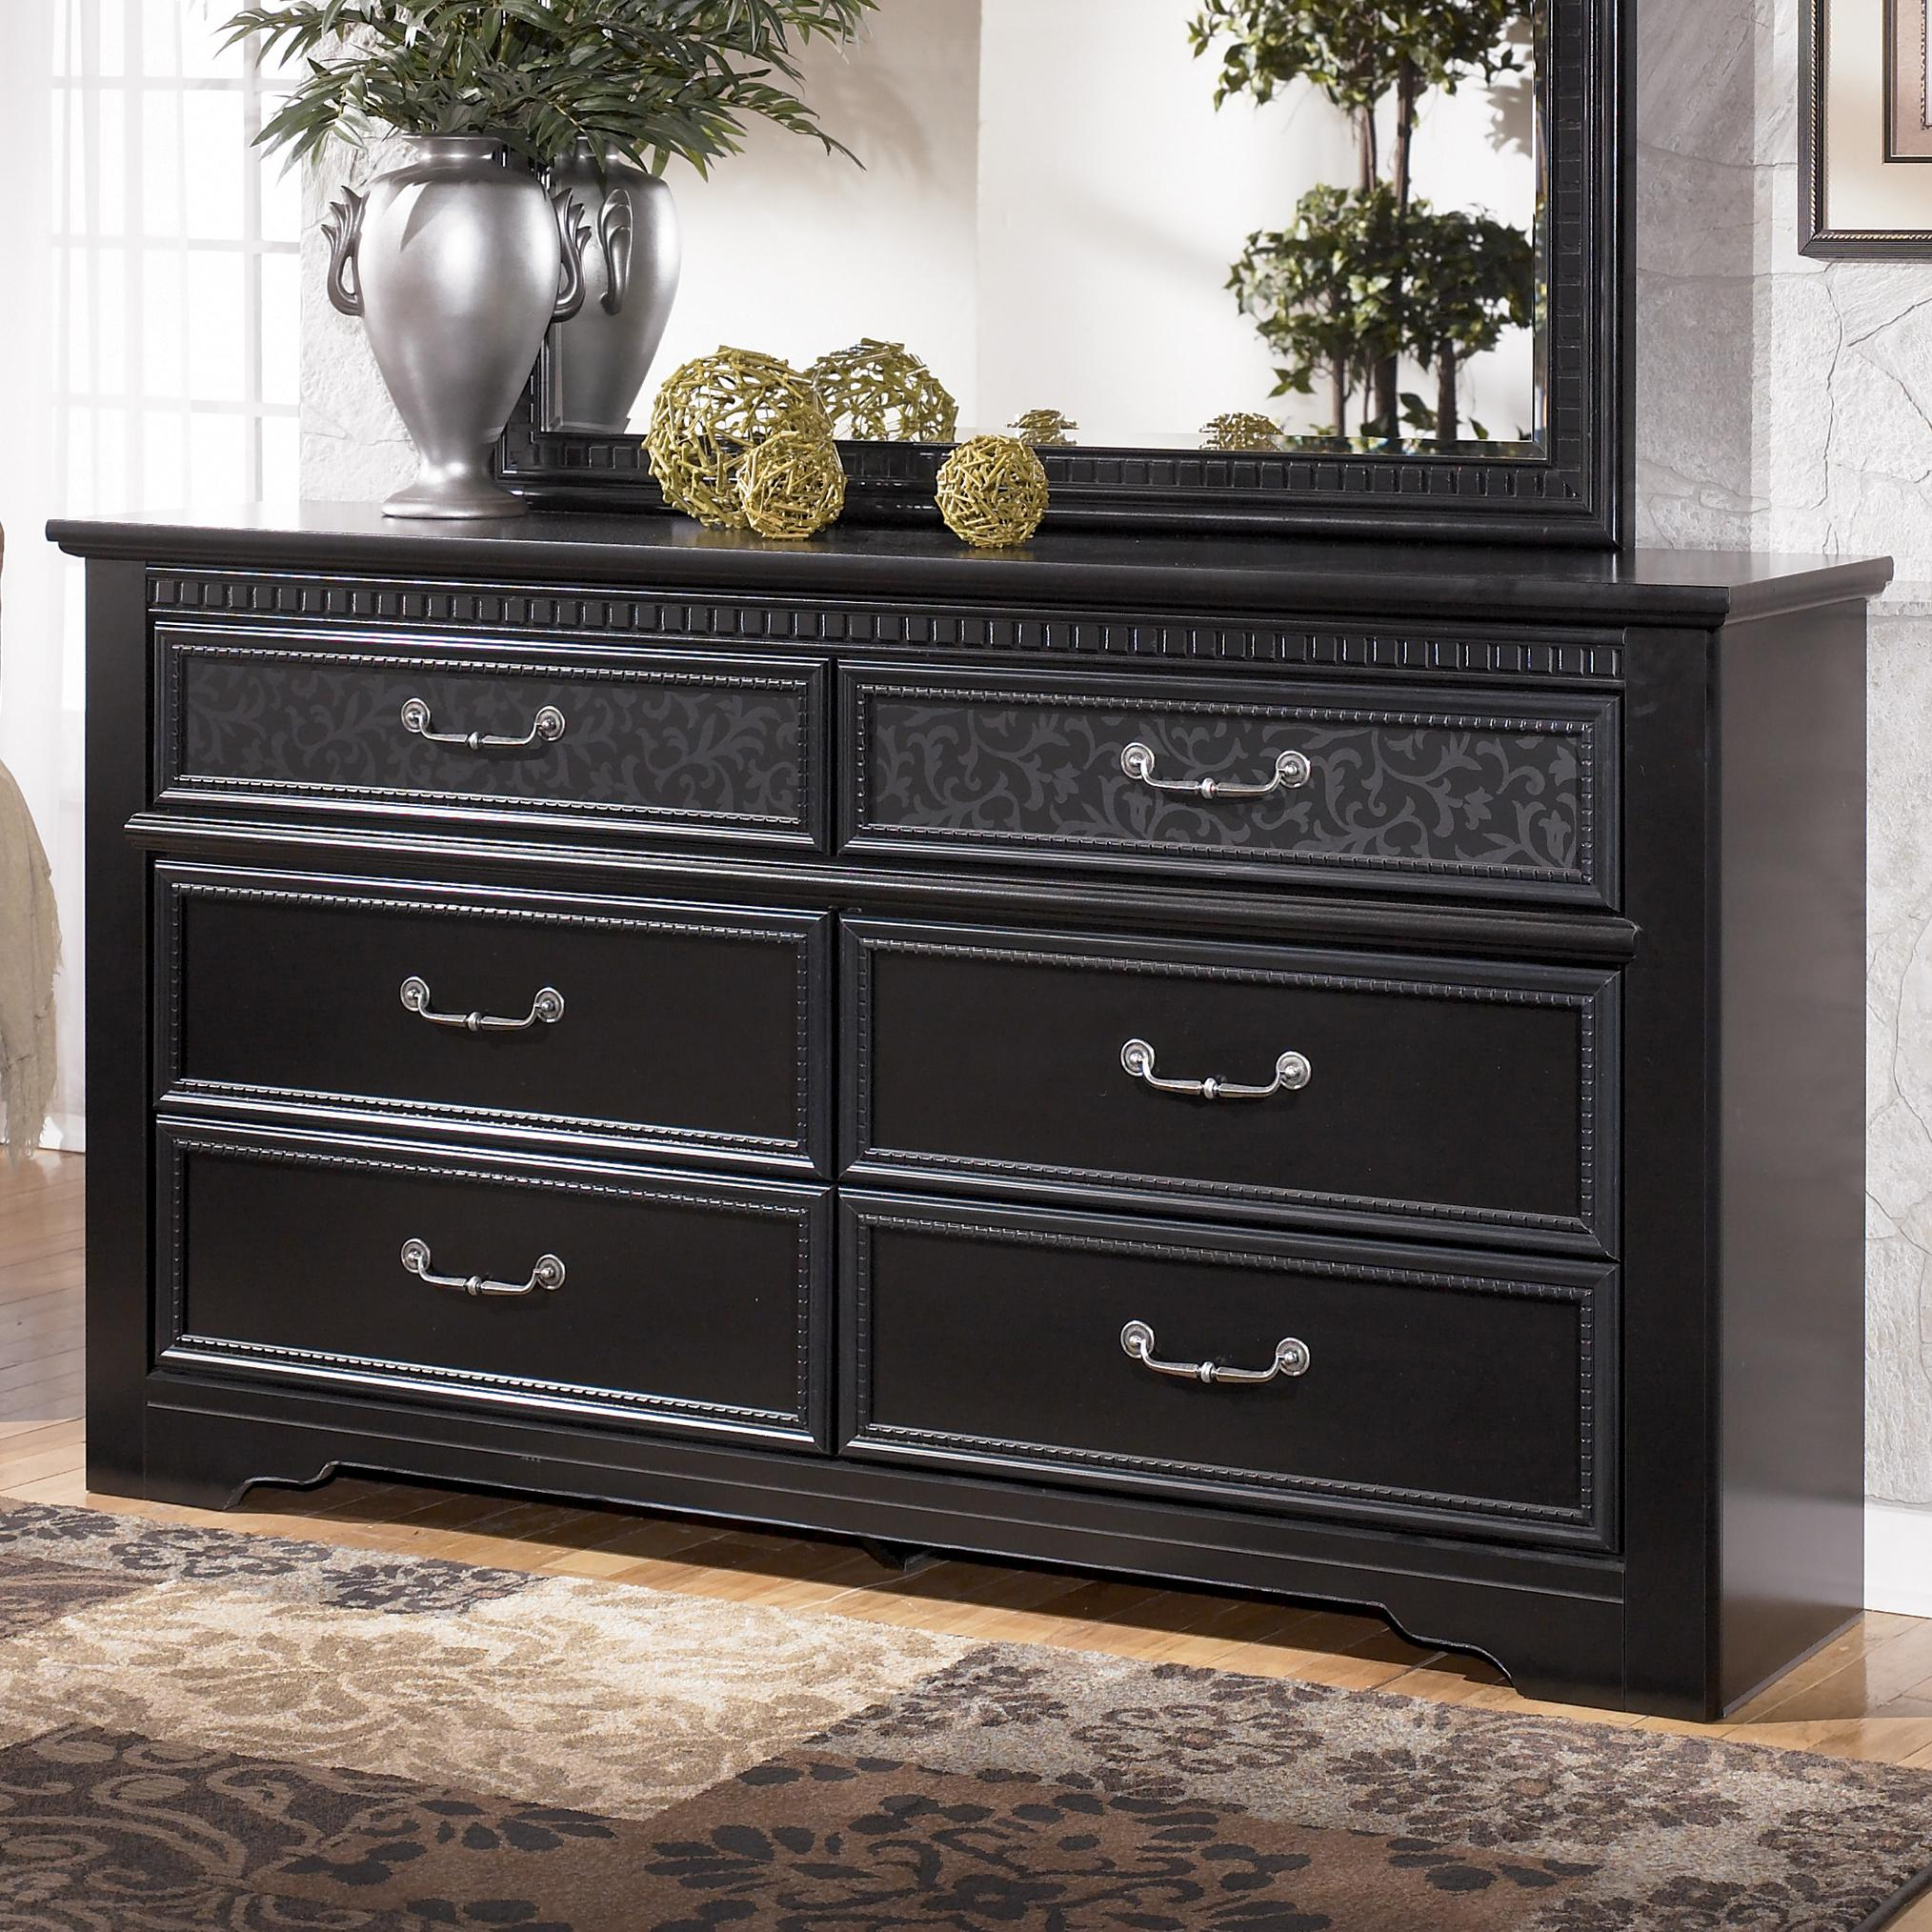 Signature Design by Ashley Cavallino Dresser - Item Number: B291-31